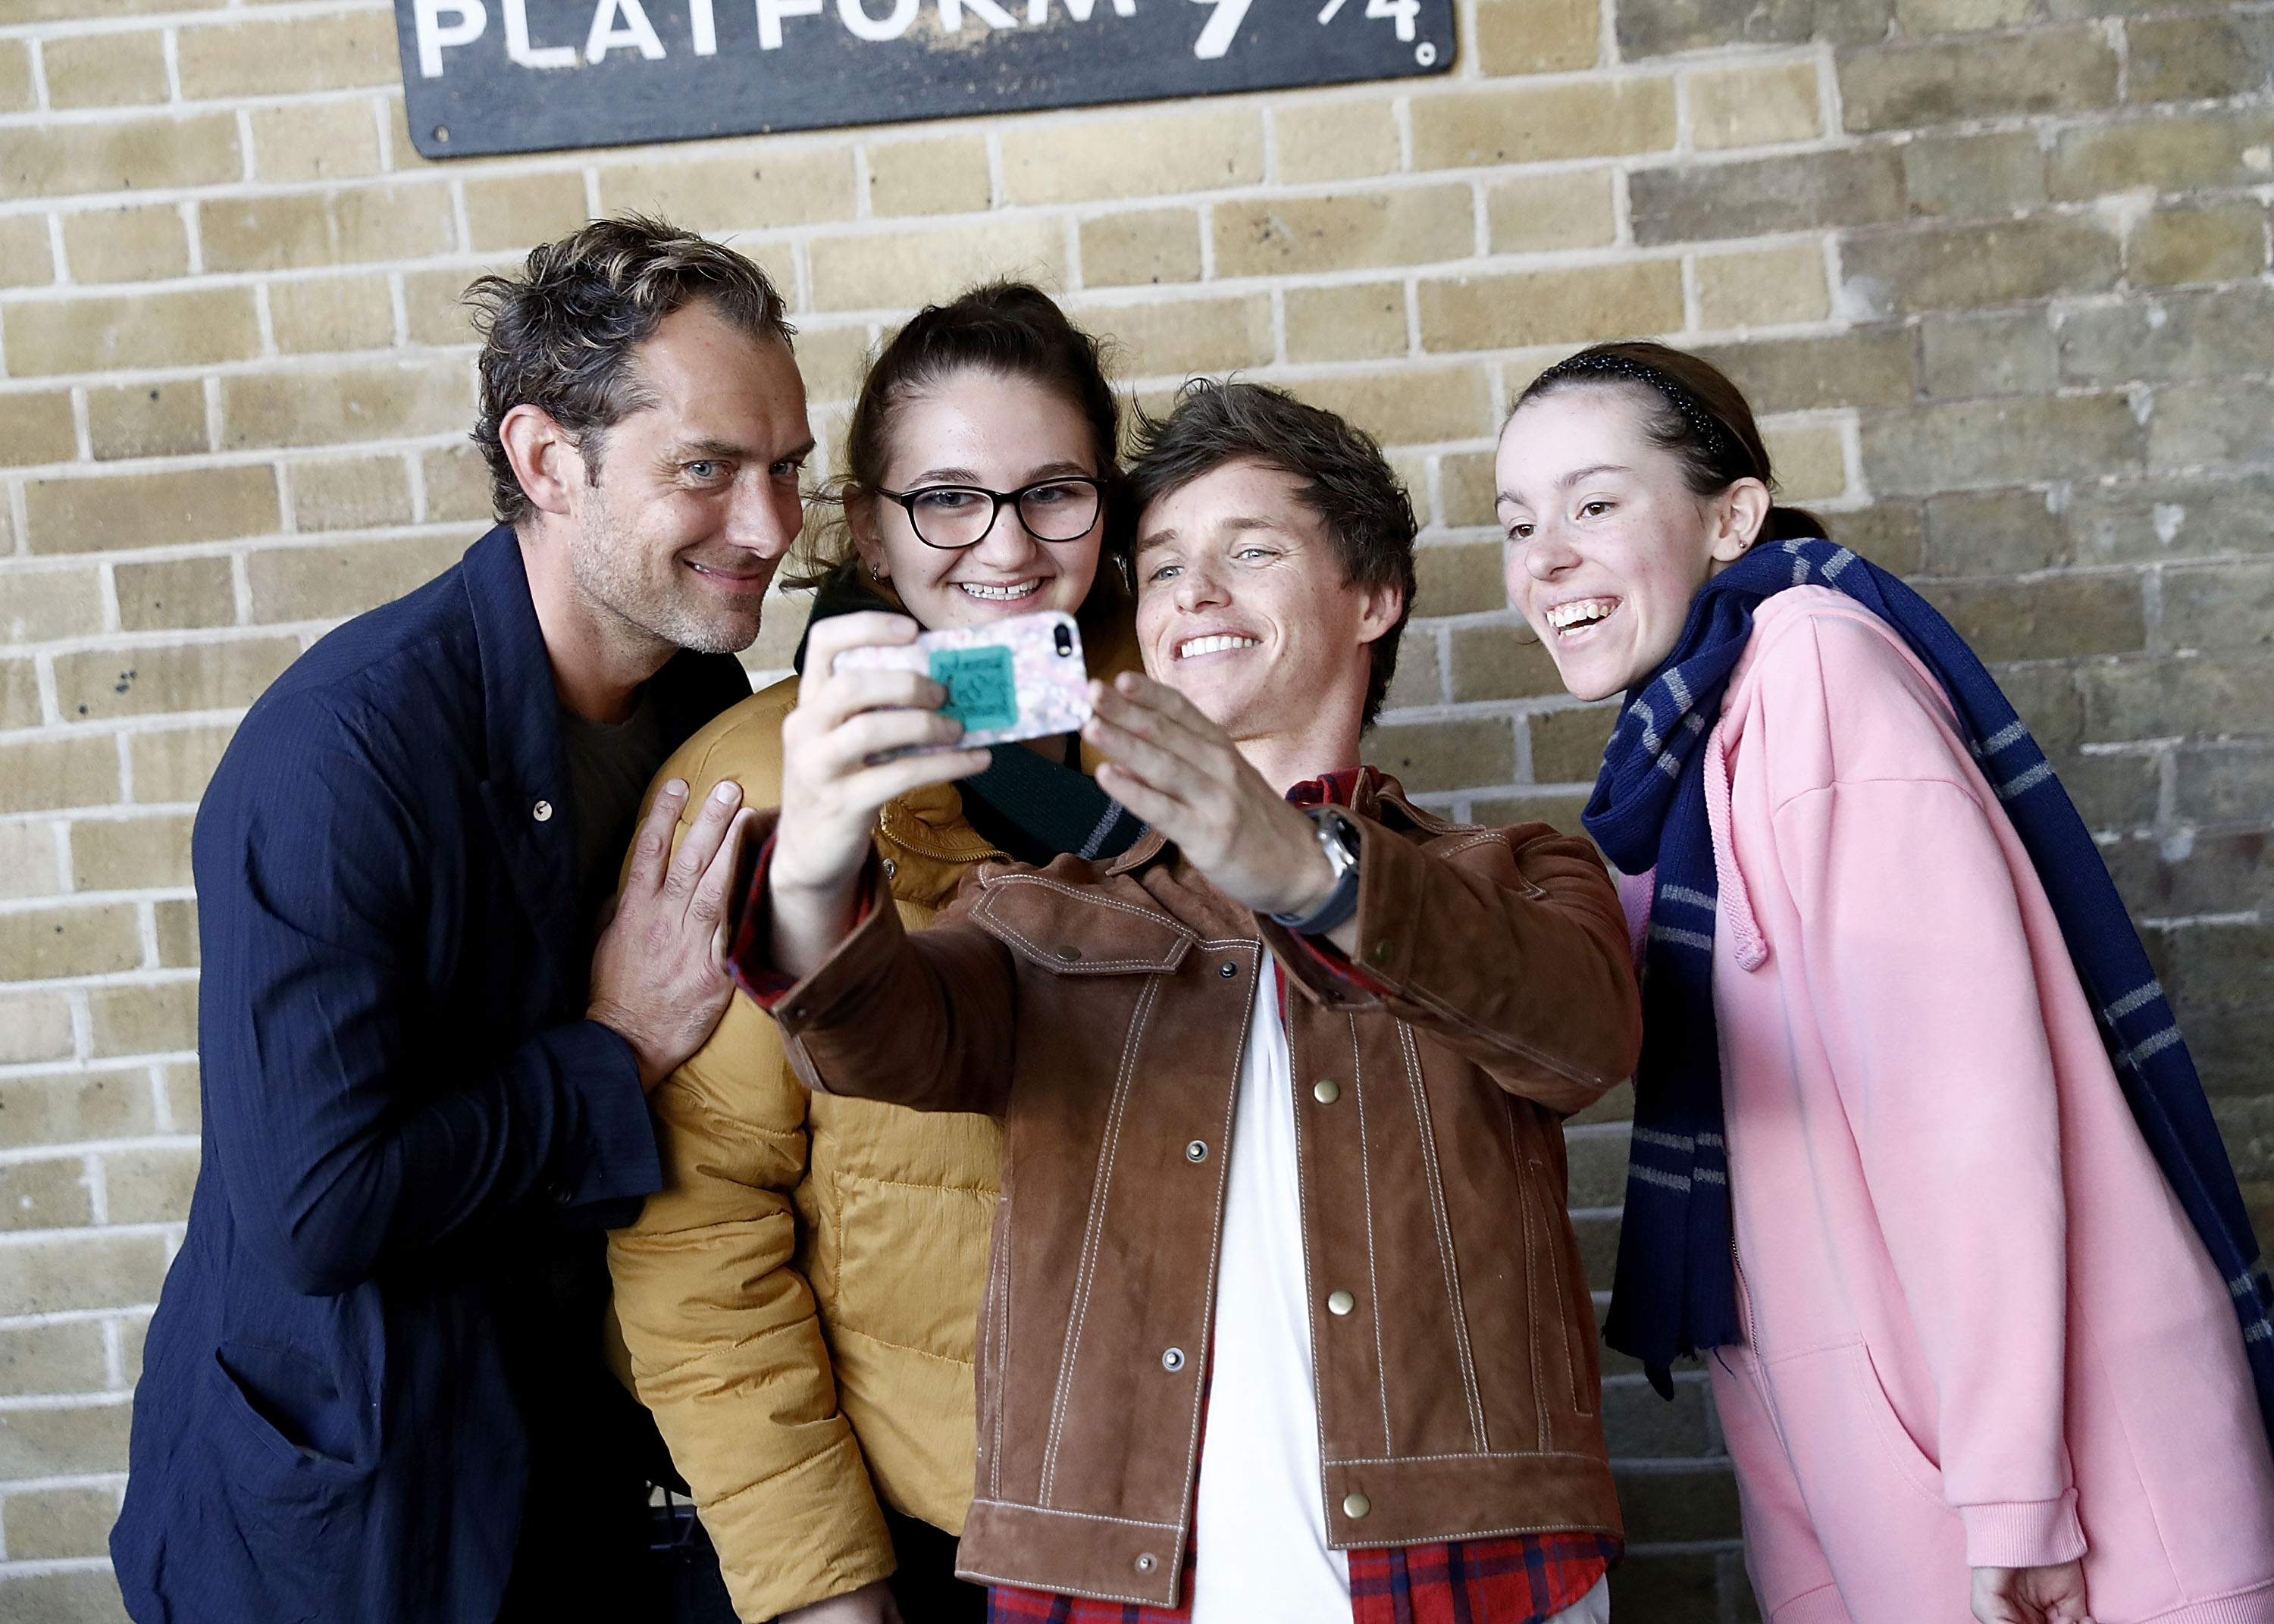 Redmayne snaps a selfie of Law and two select fans.